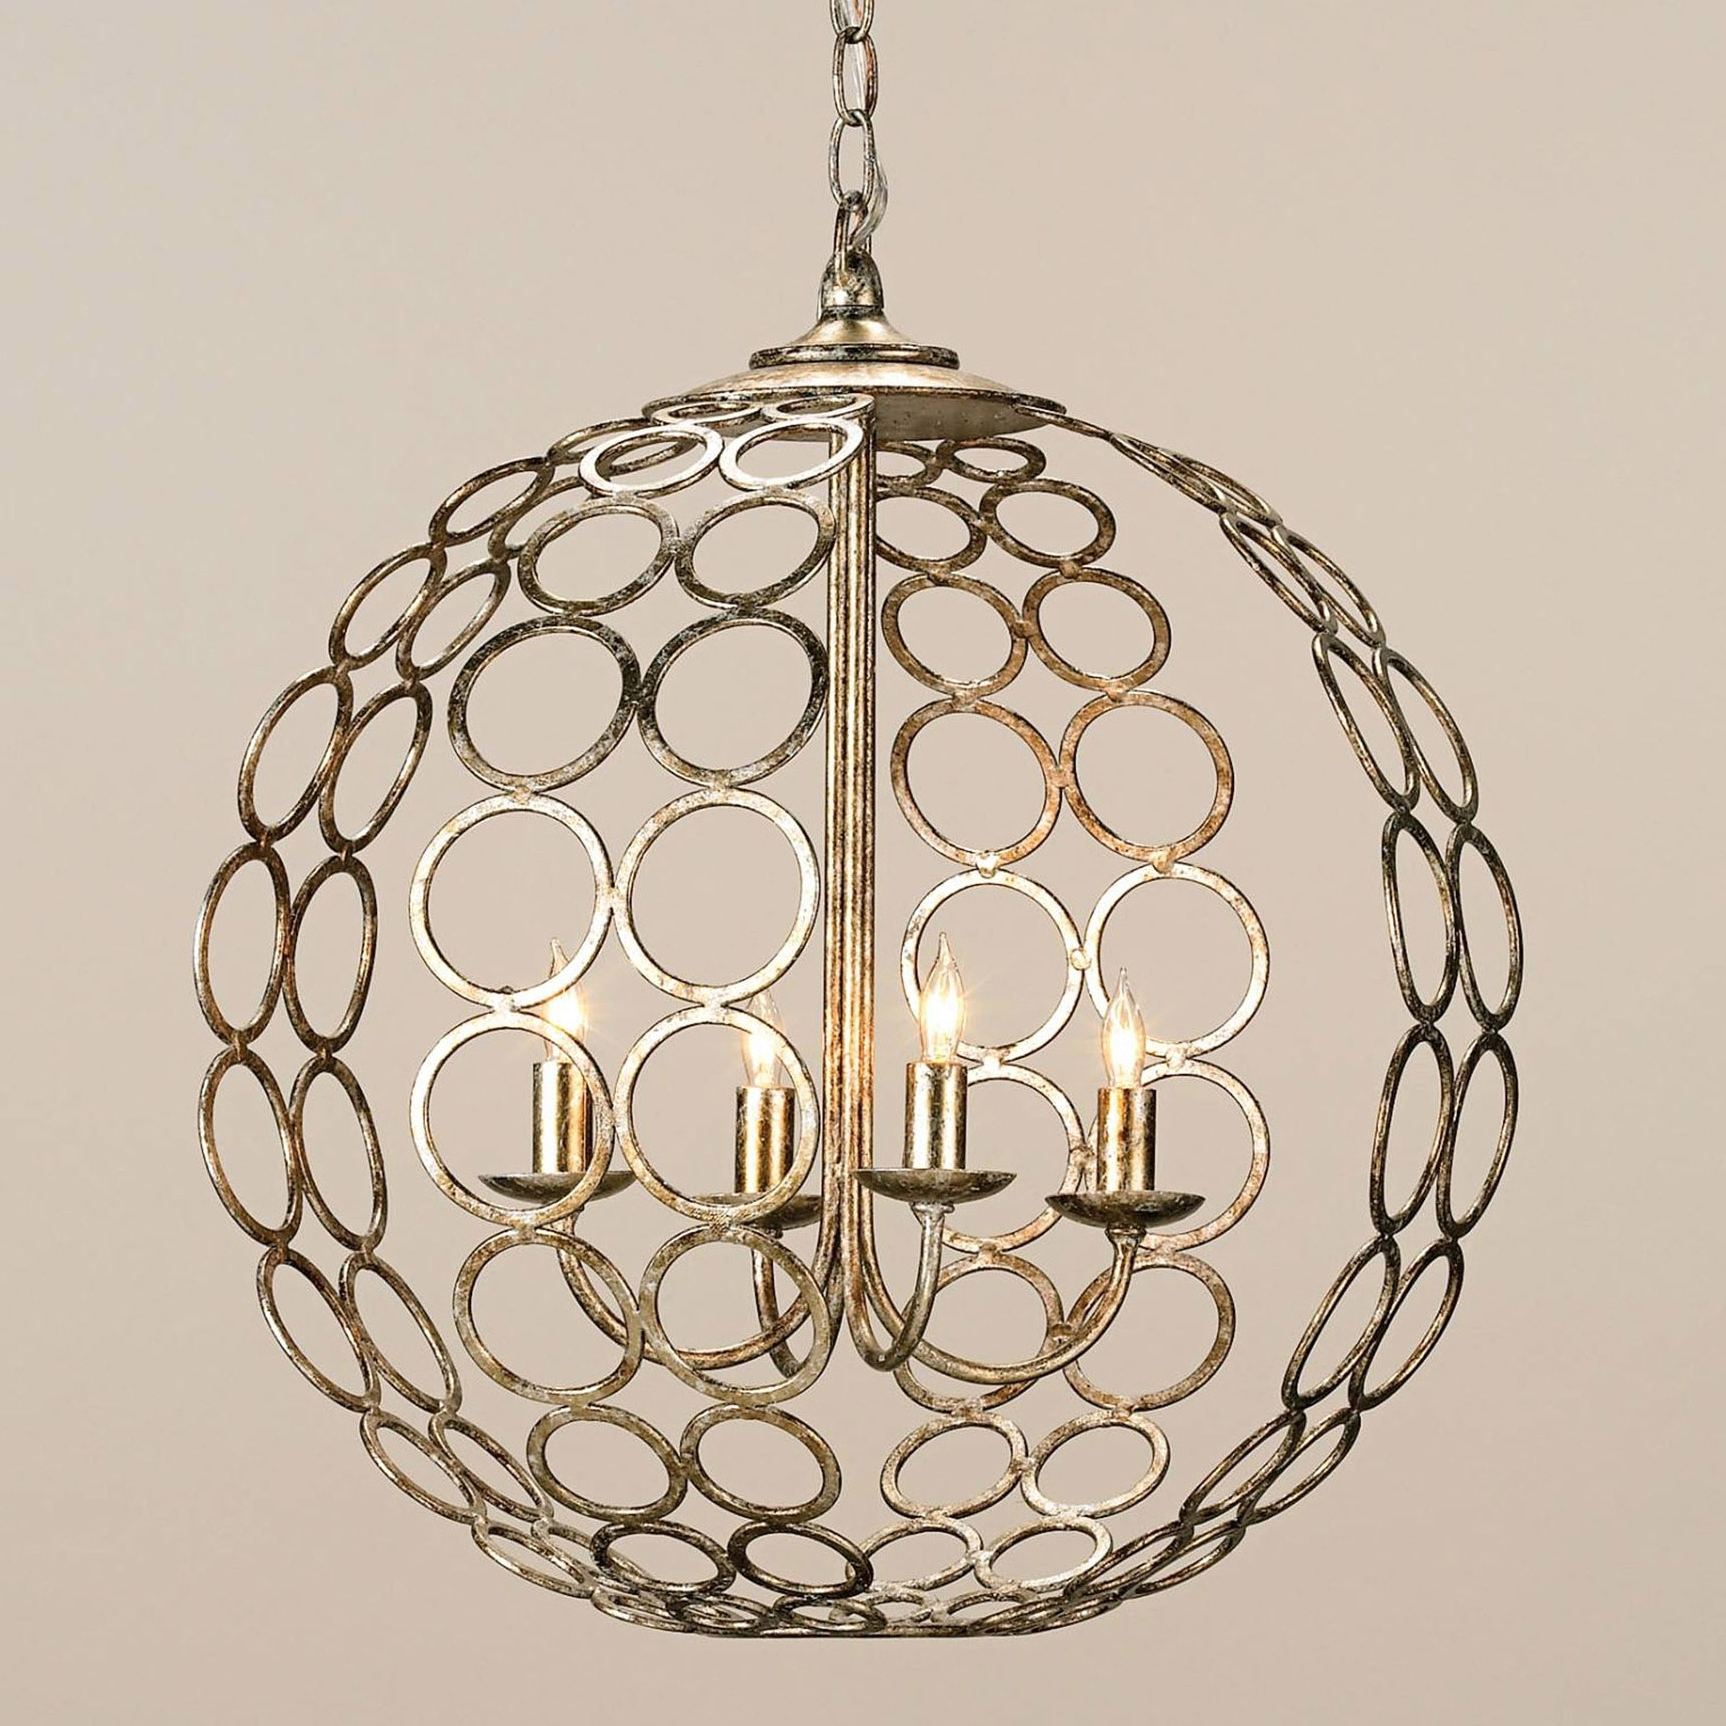 Most Up To Date And Company 9961 Tartufo Orb Chandelier Inside Orb Chandeliers (View 9 of 15)